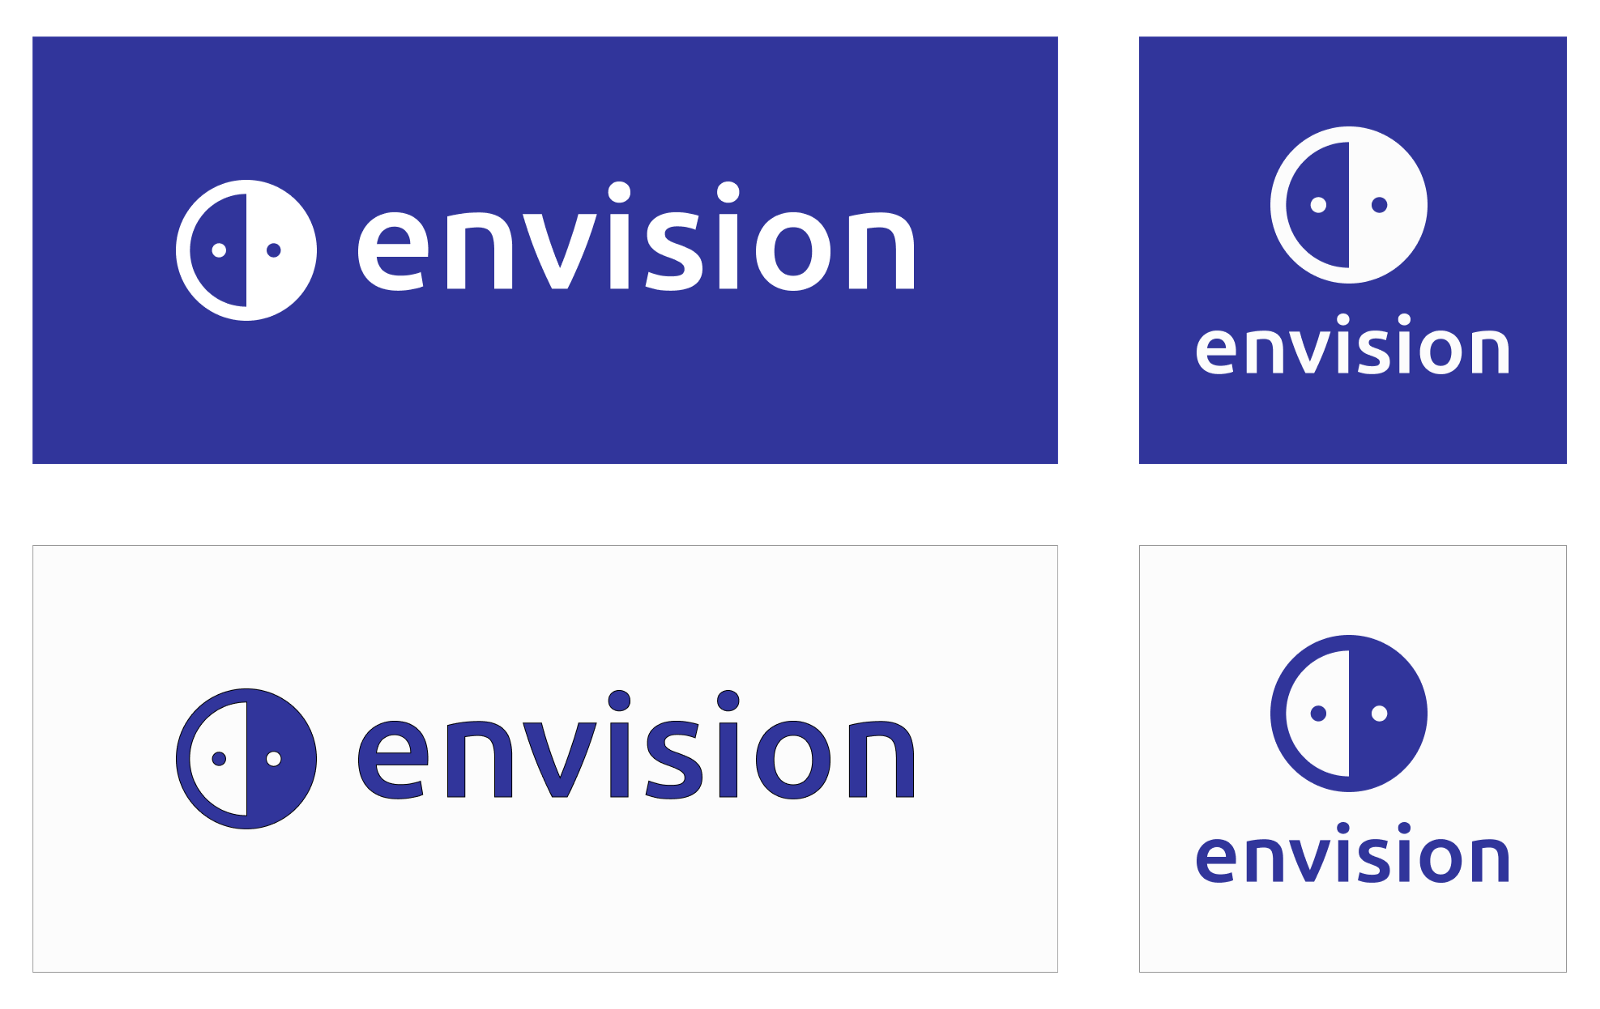 Envision's logo in blue and white backgrounds